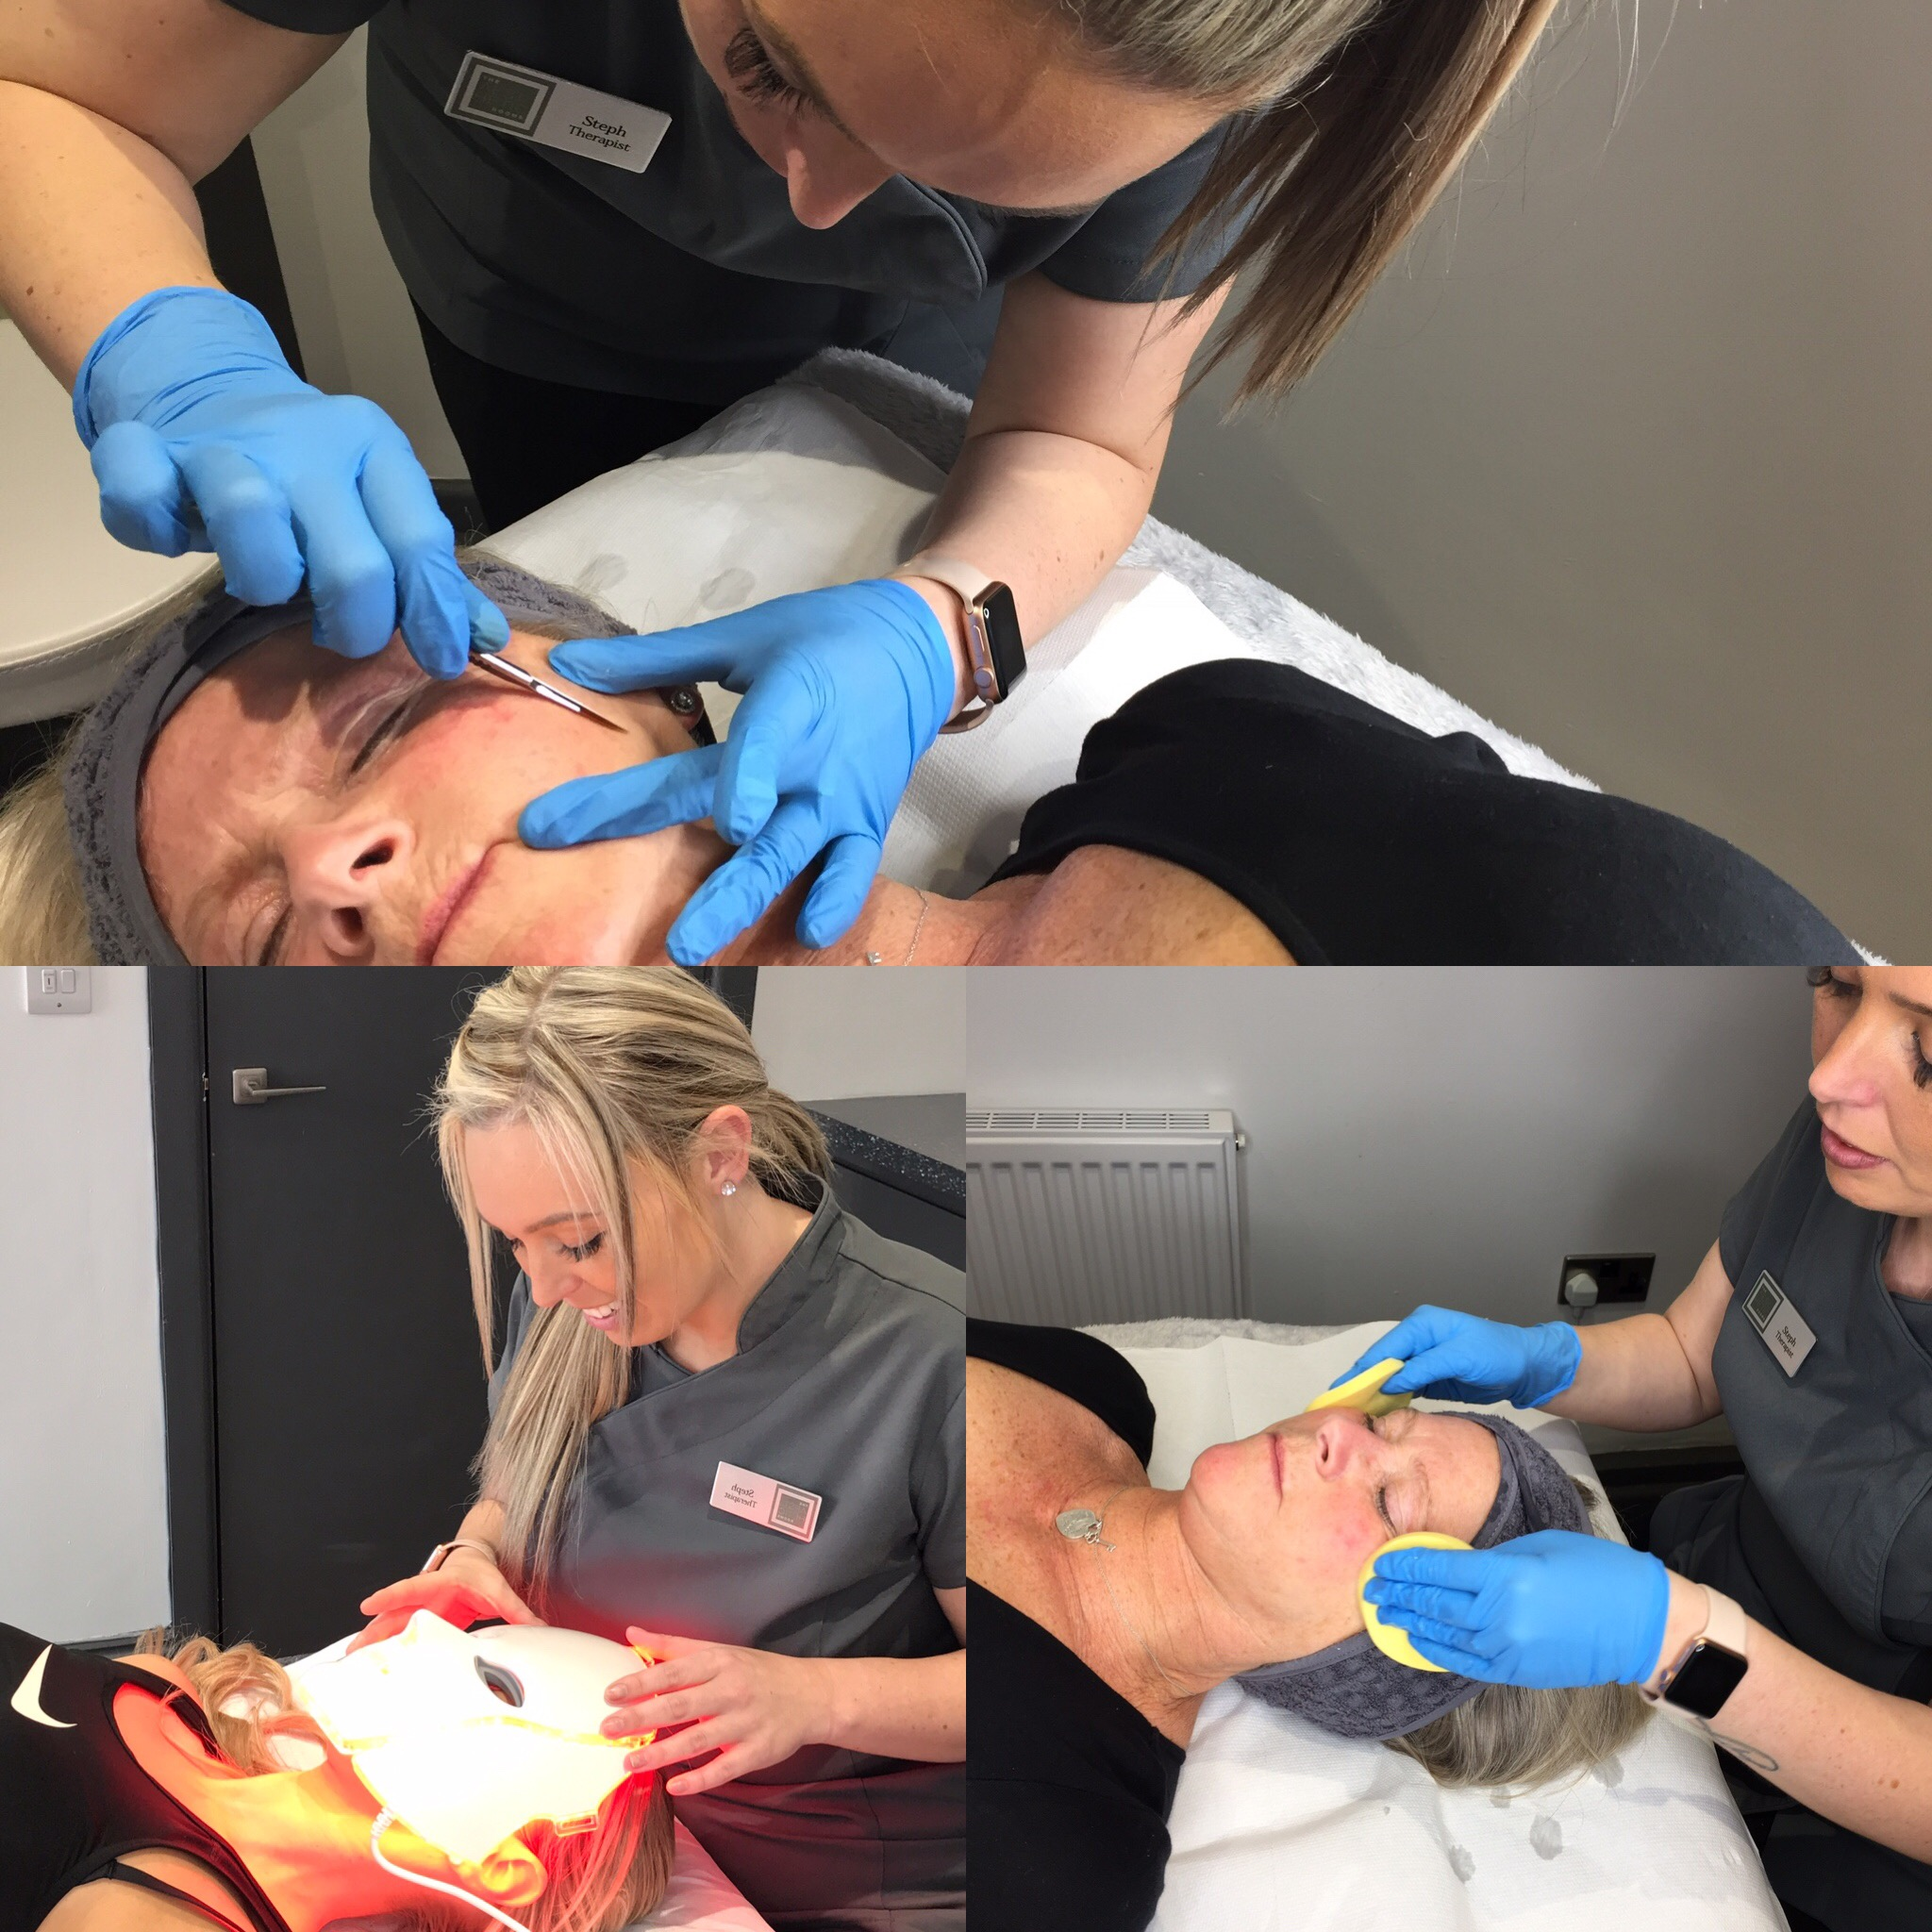 STEPHANIE GARNDER - SKIN THERAPISTSteph has been with The Aesthetic Rooms team for a year and is trained in various non-medical results based treatments. She has extensive knowledge about skin and will advise the best treatment for you.